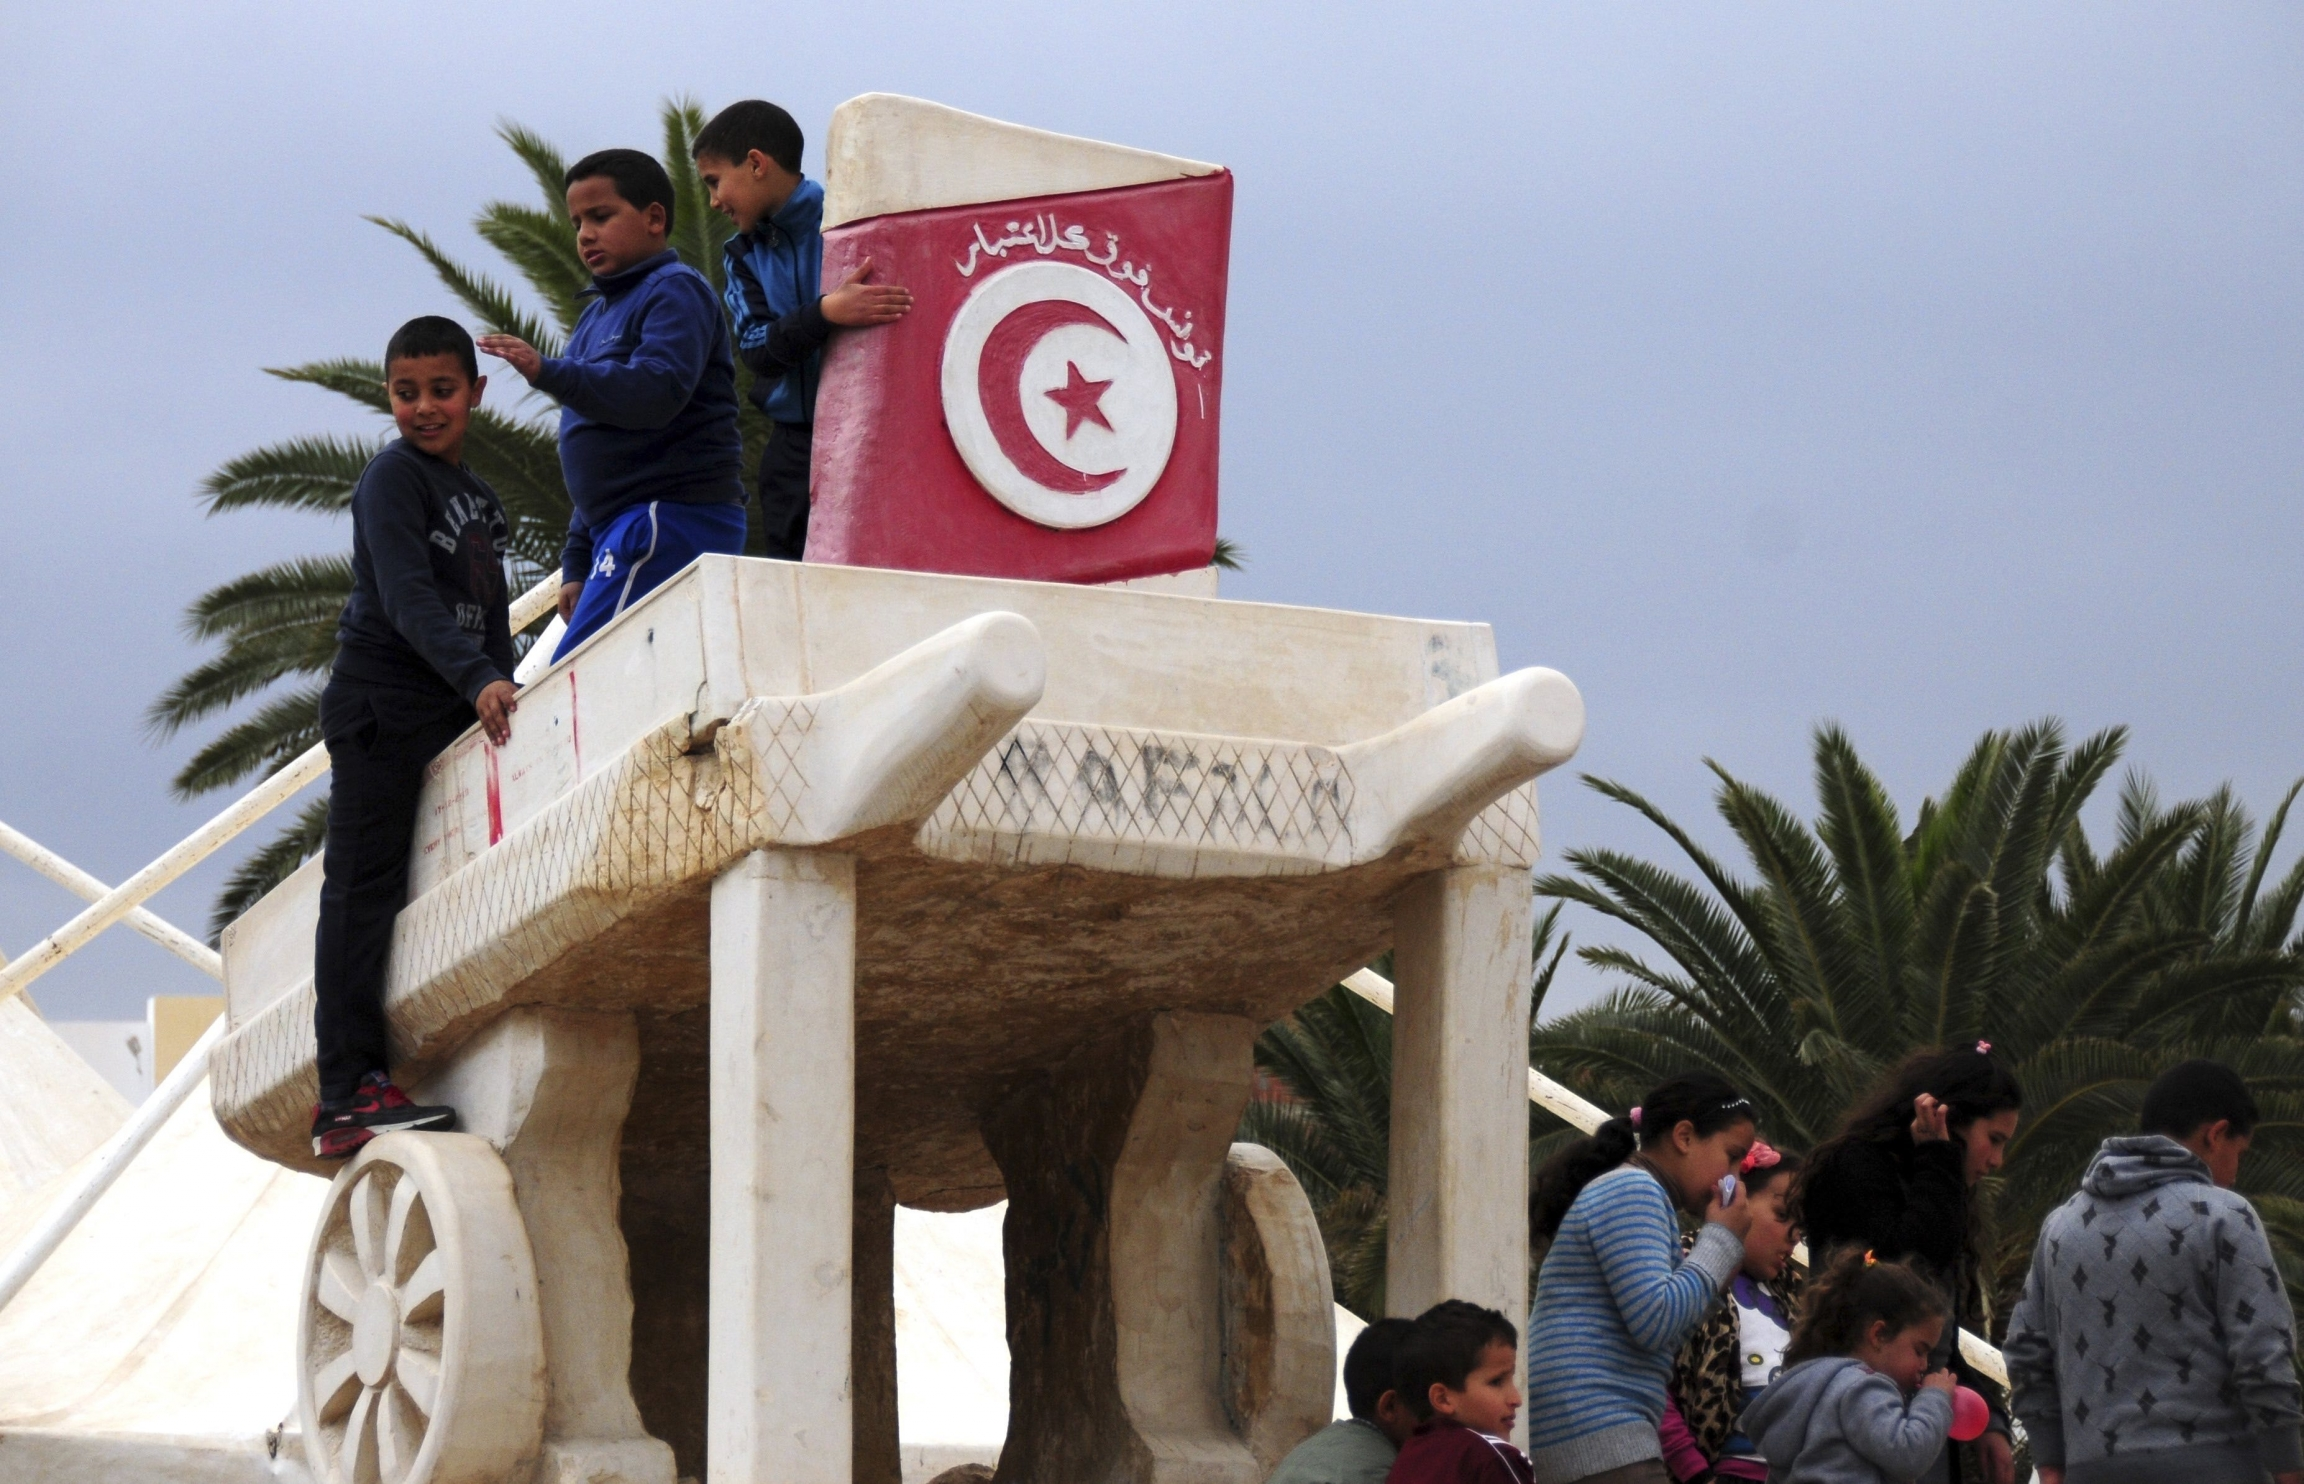 Children play on a statue of a wooden cart like that used by Mohamed Bouazizi to sell fruits, in Sidi Bouzid, Tunisia, Dec.17, 2015. Tunisians who won the Nobel Peace Prize joined townspeople in the country's beleaguered heartland to mark five years since